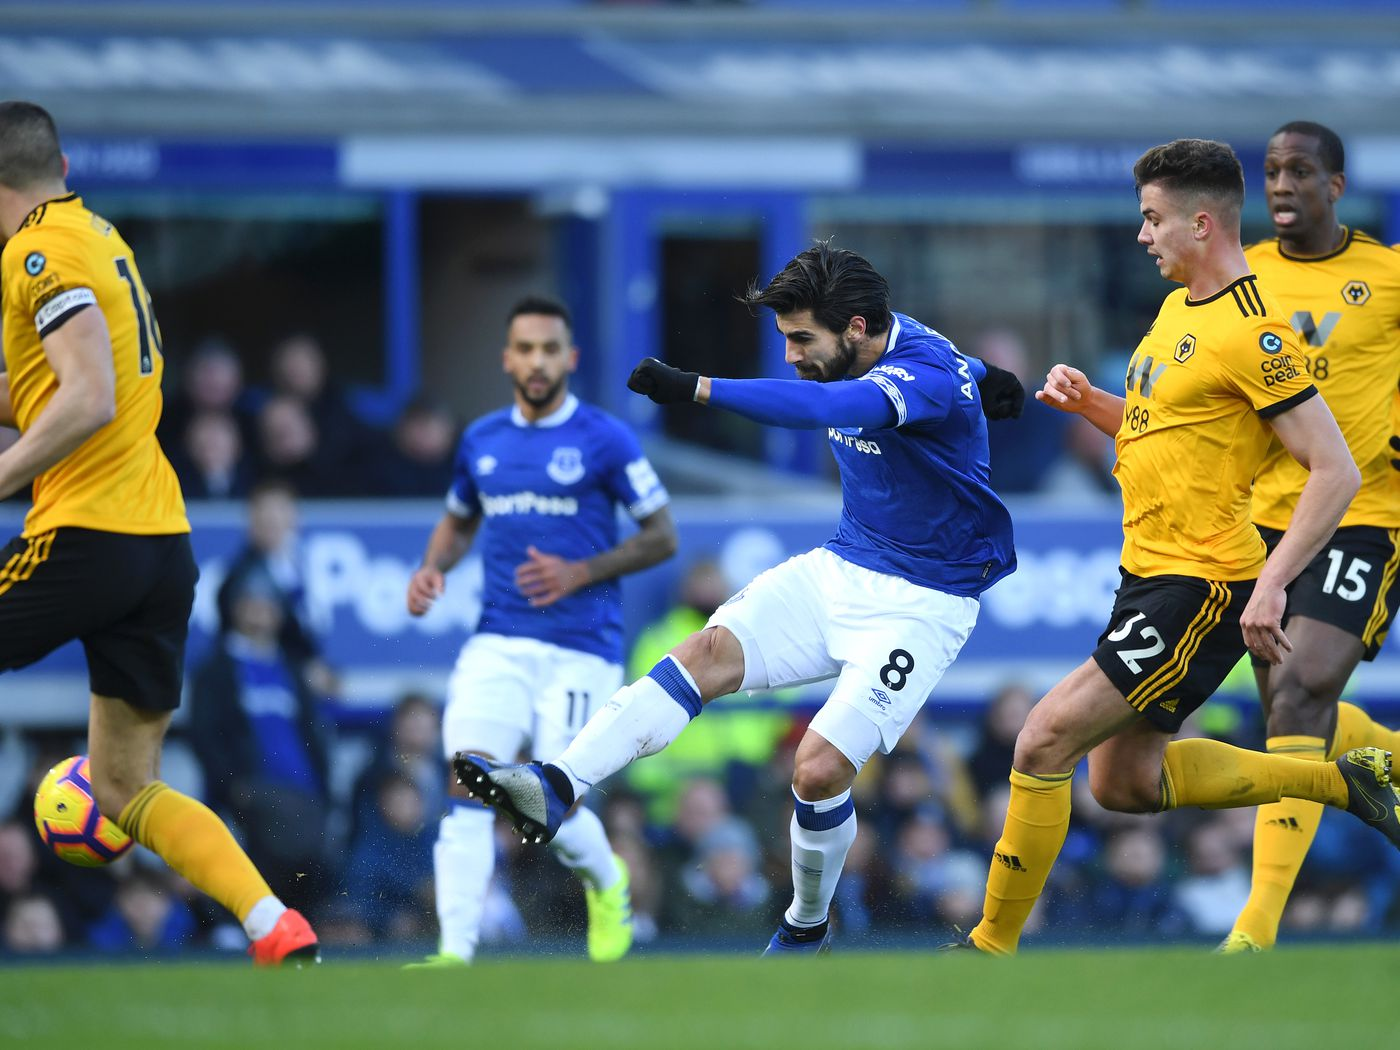 Everton vs Wolves: Live Blog & Highlights | Blues outclassed 3-1 - Royal Blue Mersey